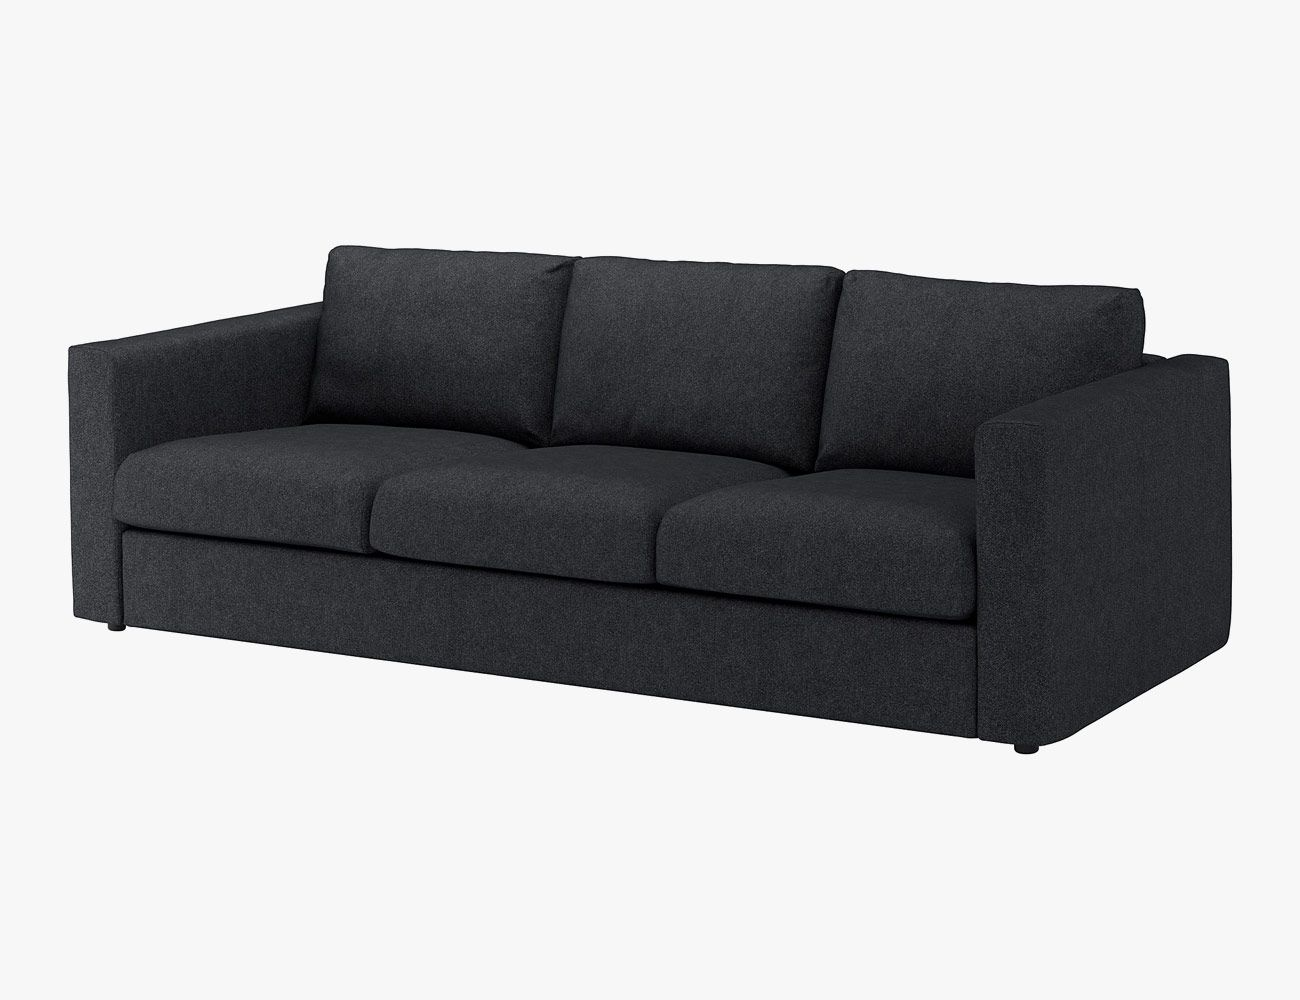 Excellent The 16 Best Sofas And Couches You Can Buy In 2019 Gear Patrol Caraccident5 Cool Chair Designs And Ideas Caraccident5Info